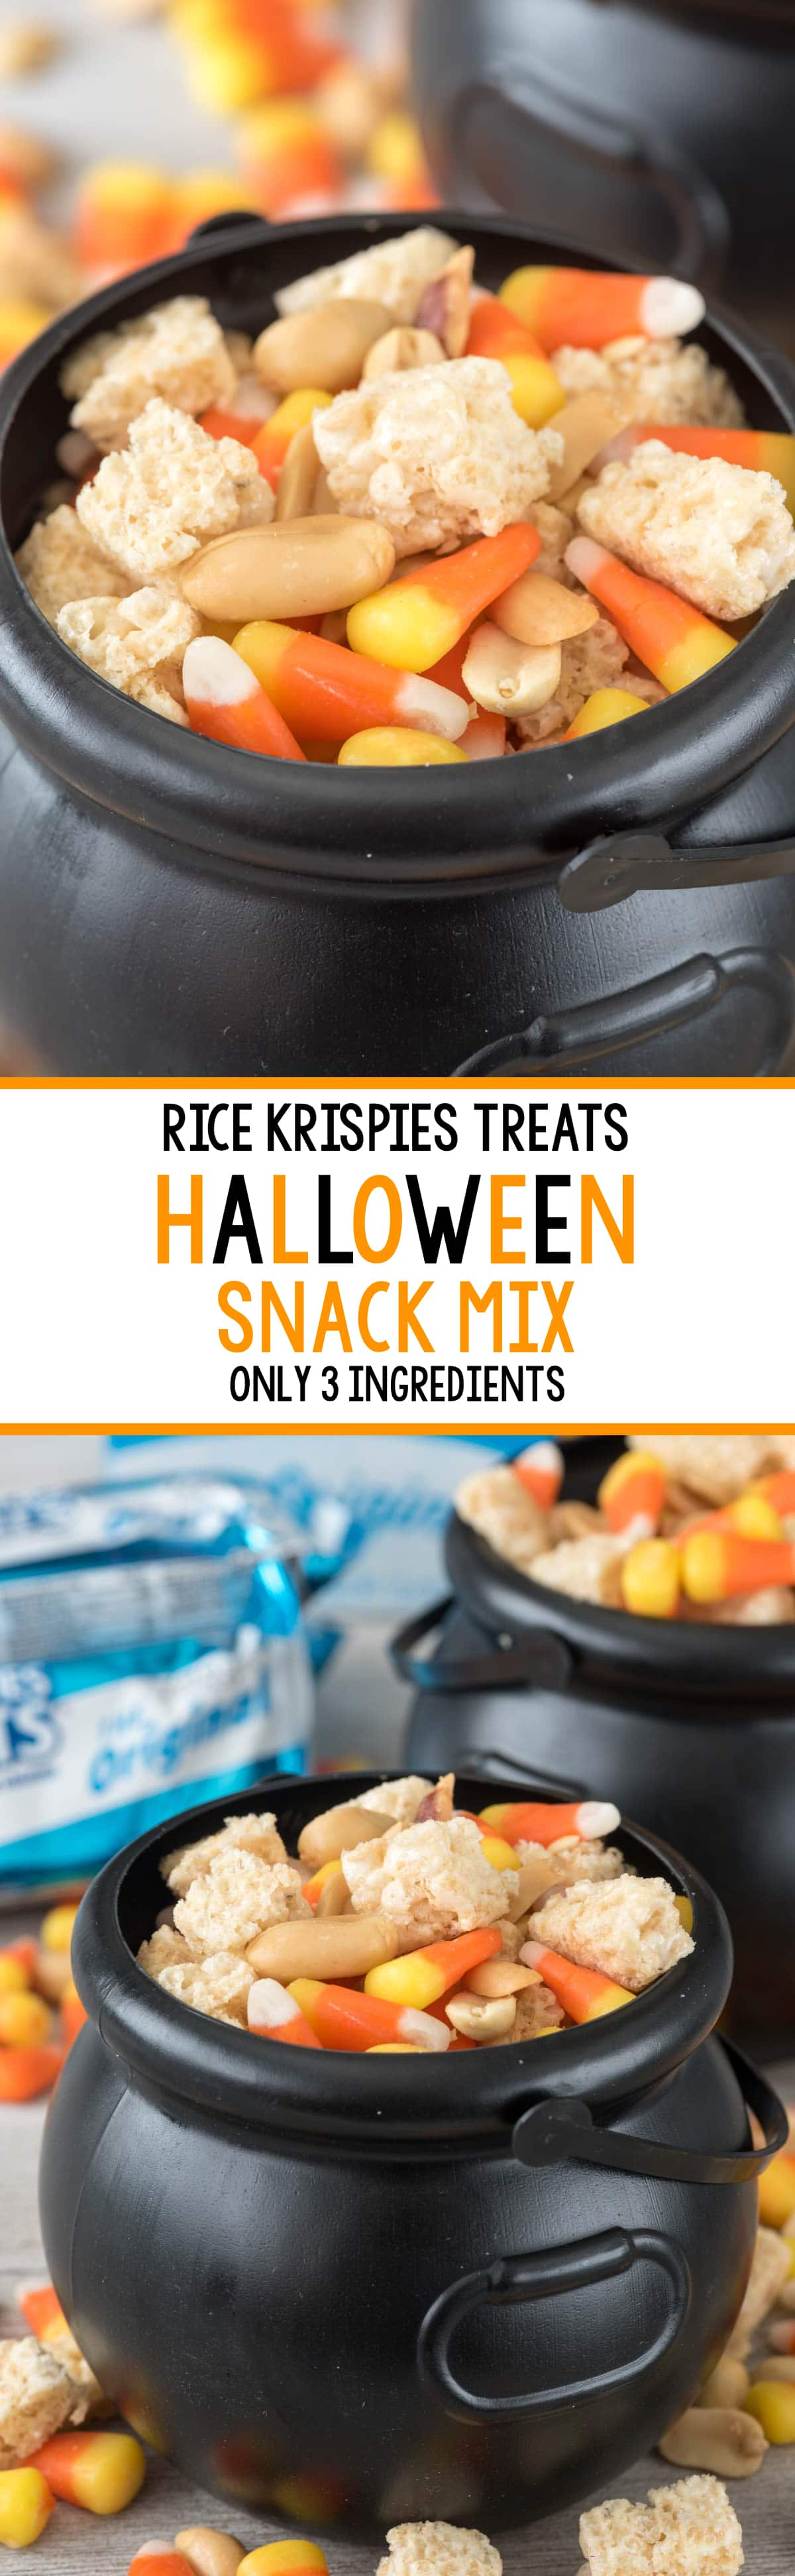 This EASY Halloween Snack Mix has only 3 ingredients! The crunchy sweetness tastes like a Payday Candy bar!